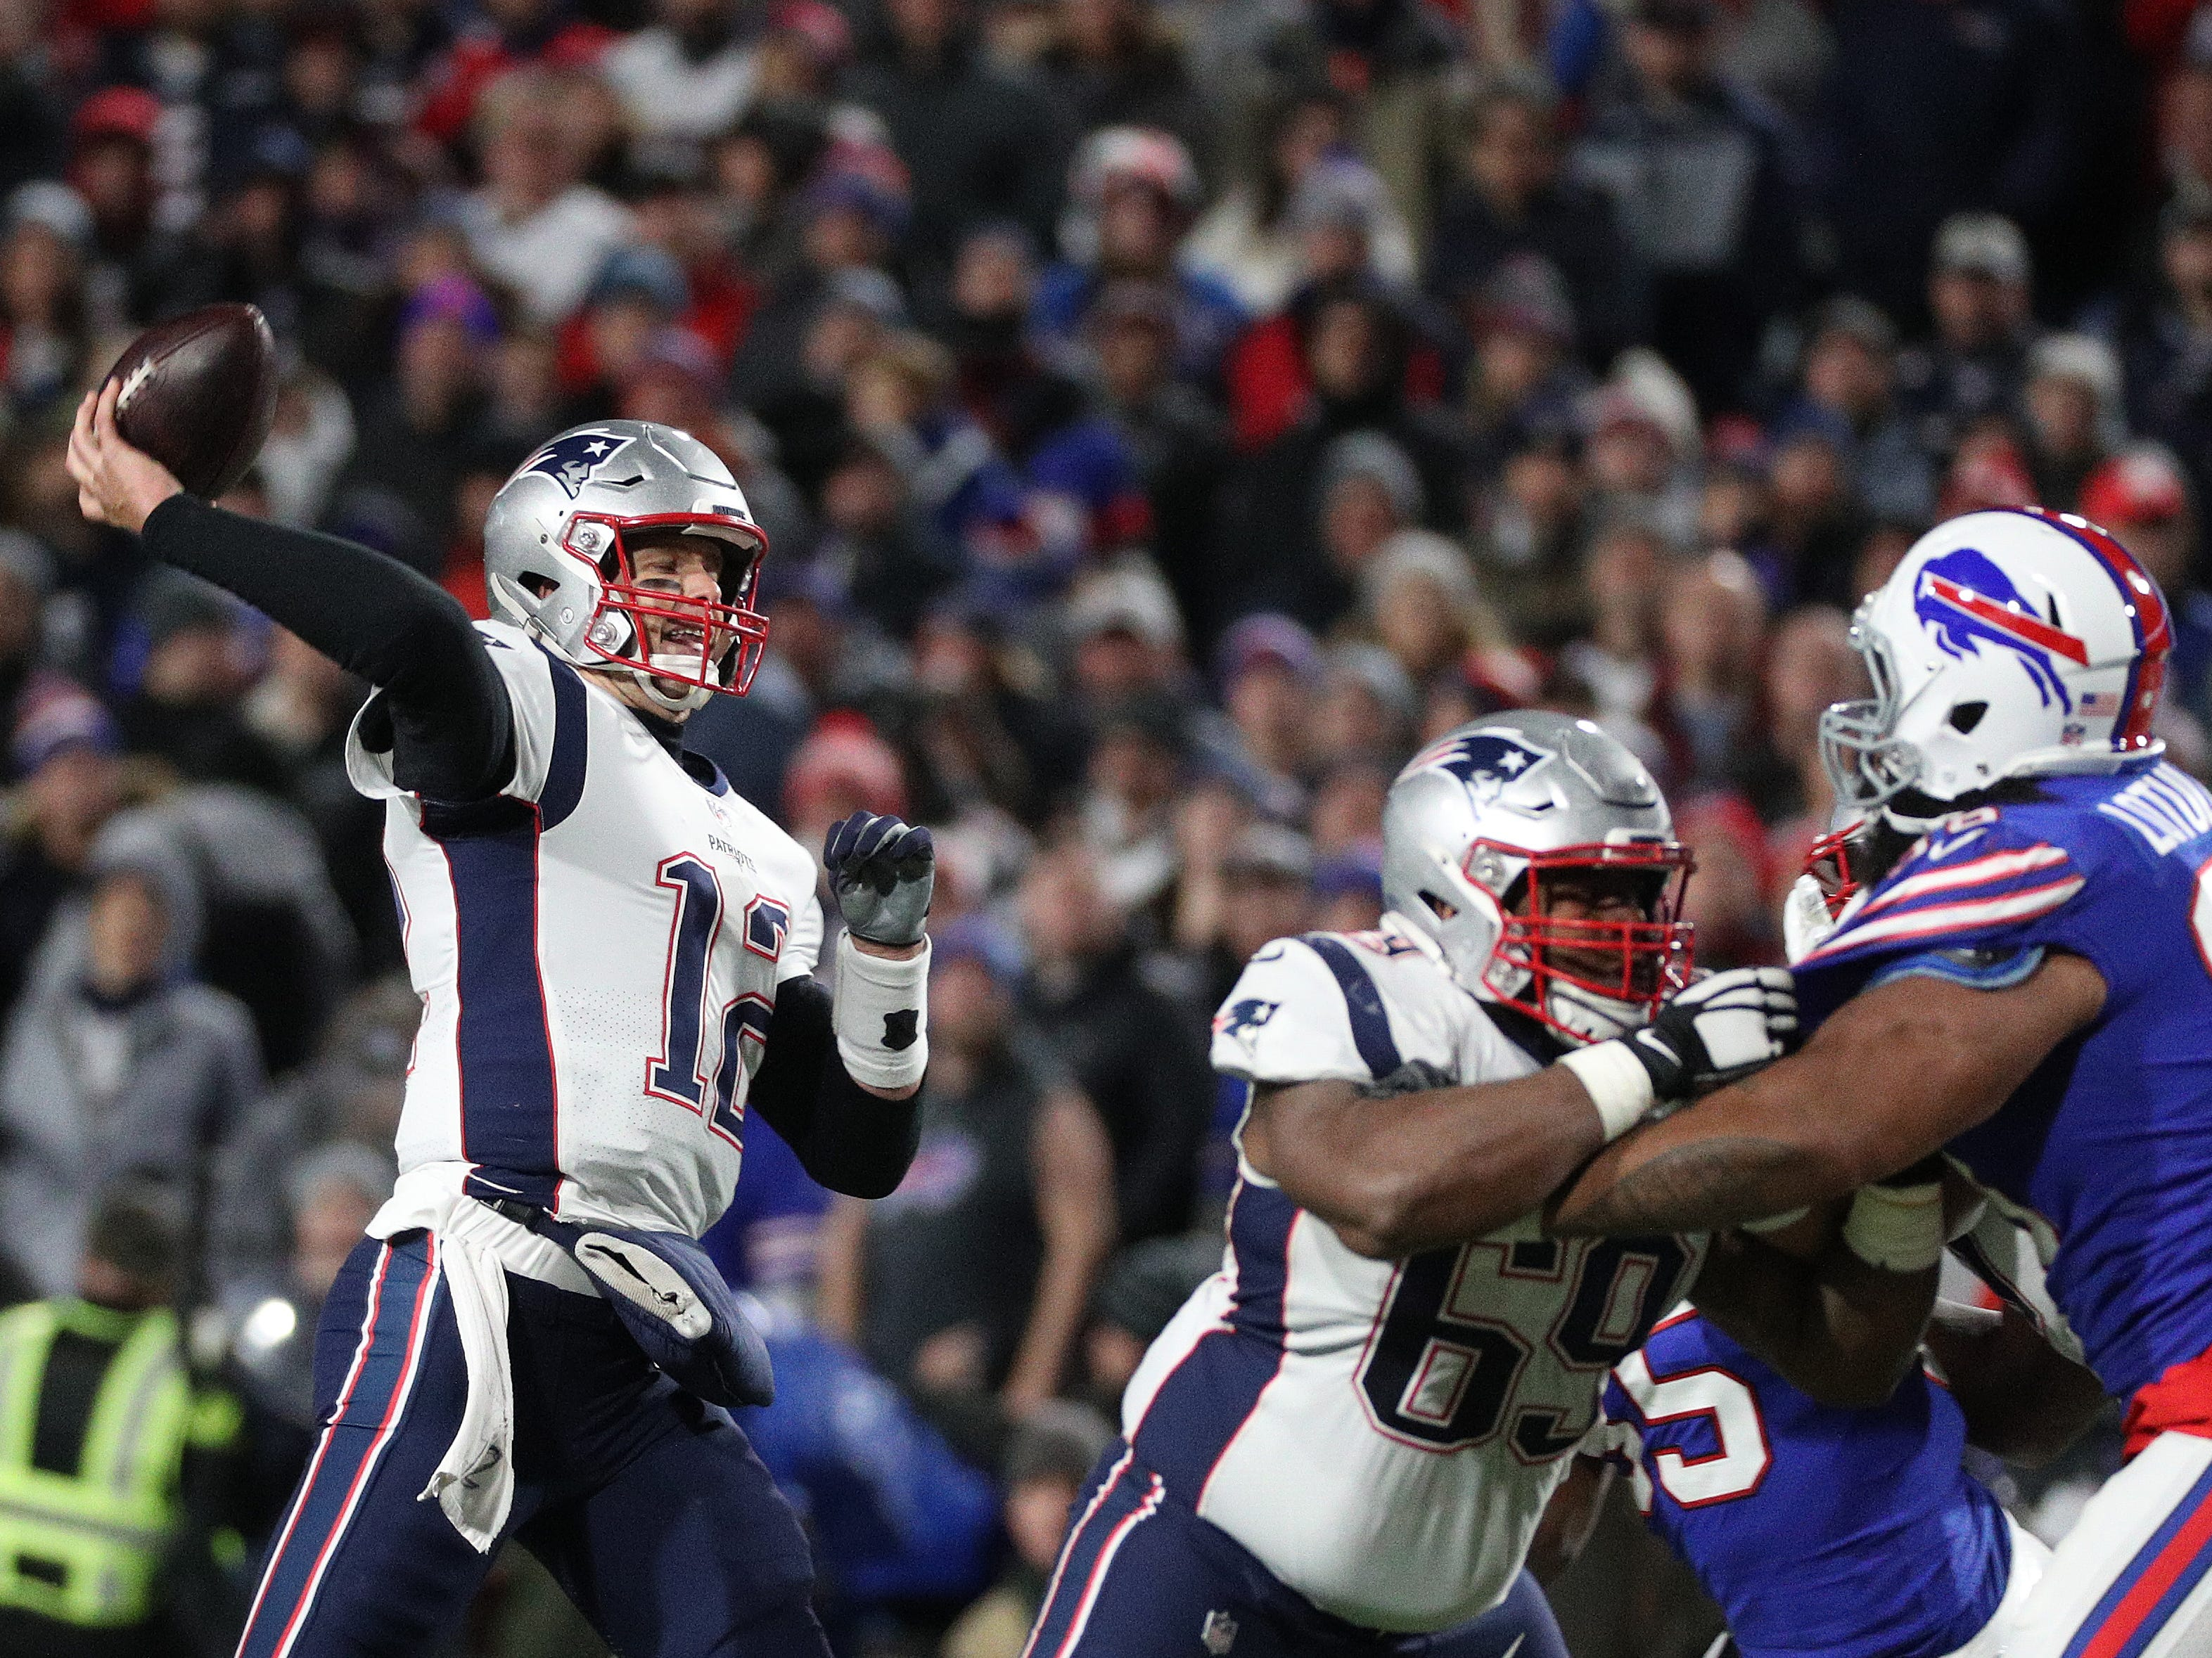 Patriots quarterback Tom Brady steps into a throw against the Bills.